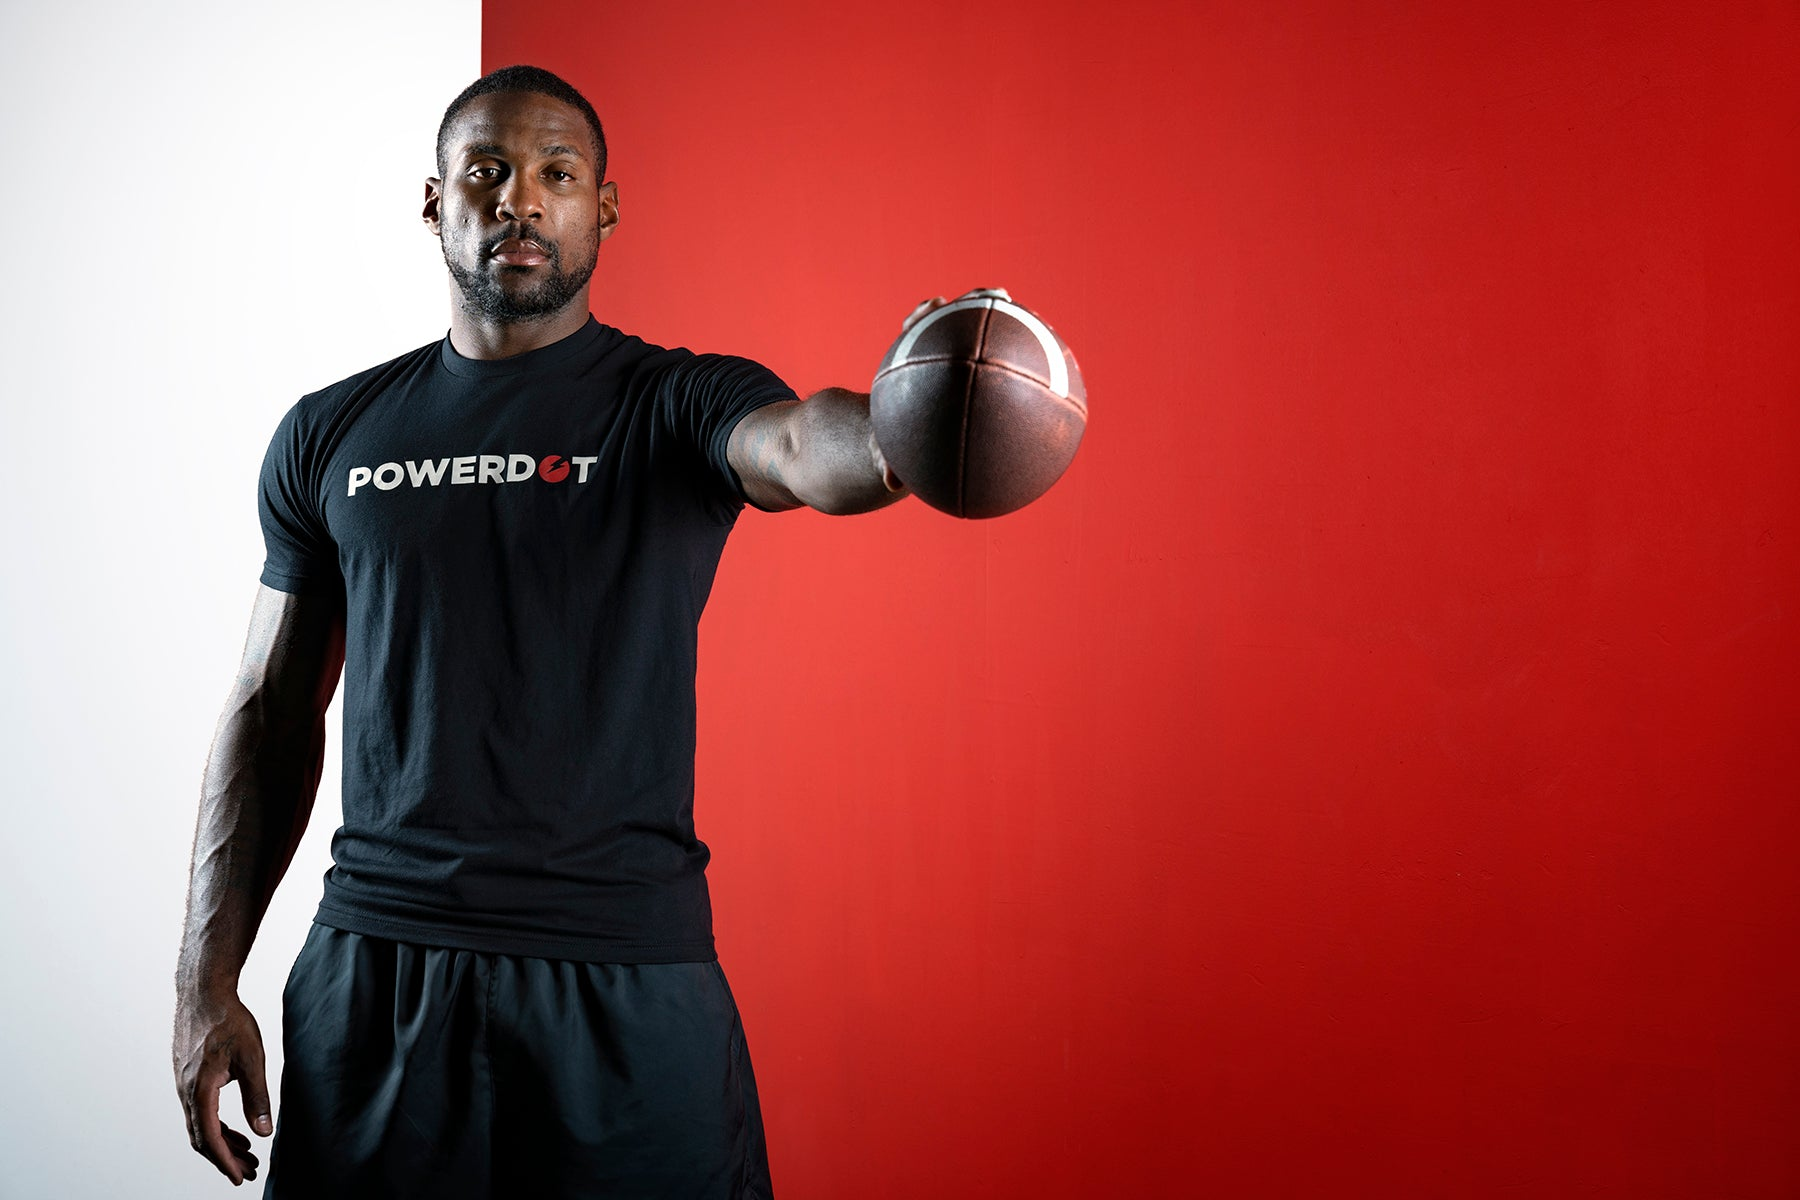 PowerDot® signs all-pro cornerback Patrick Peterson